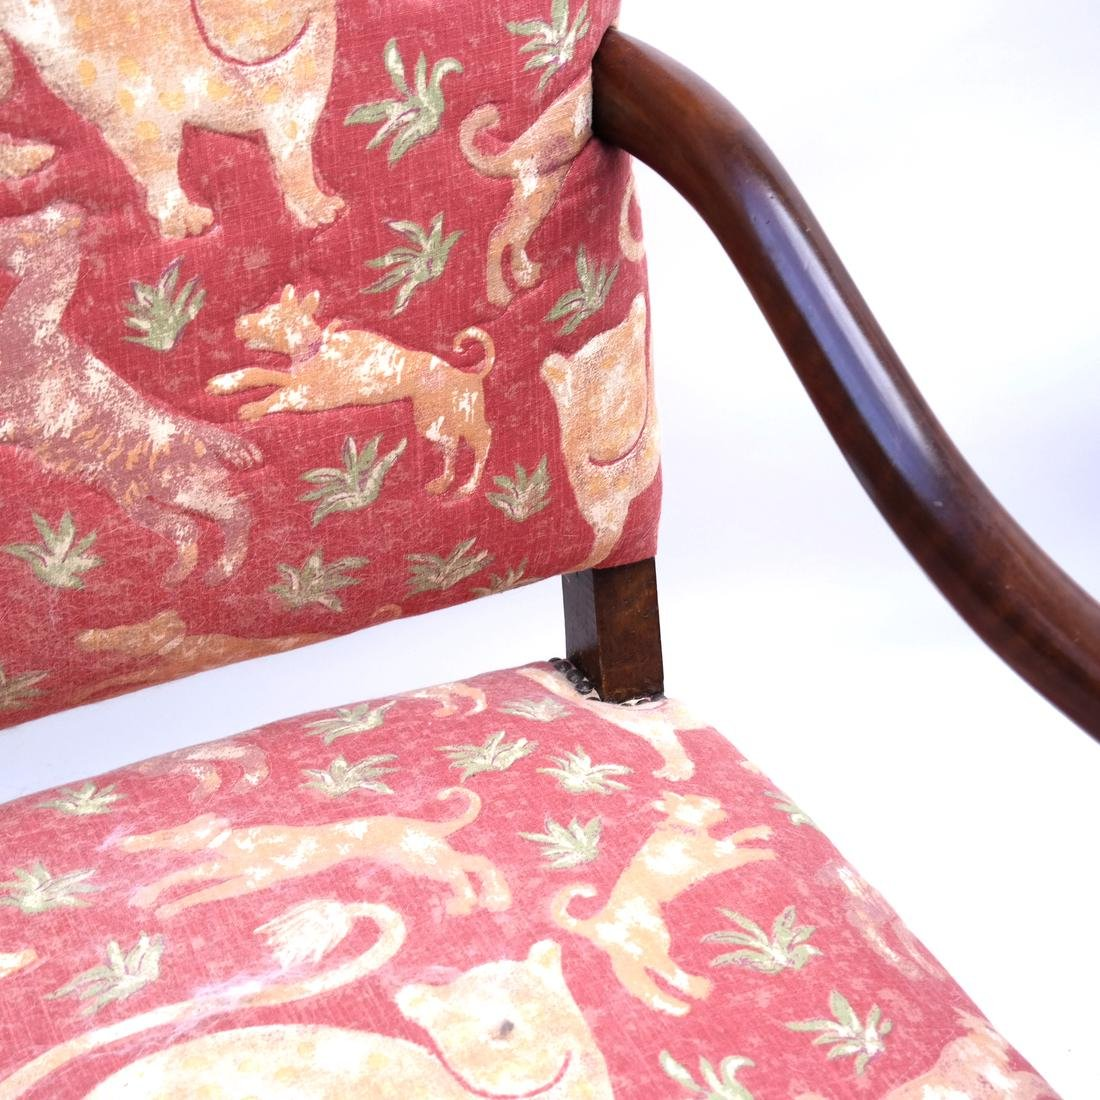 Pair of 19th Century Continental Chairs - 7